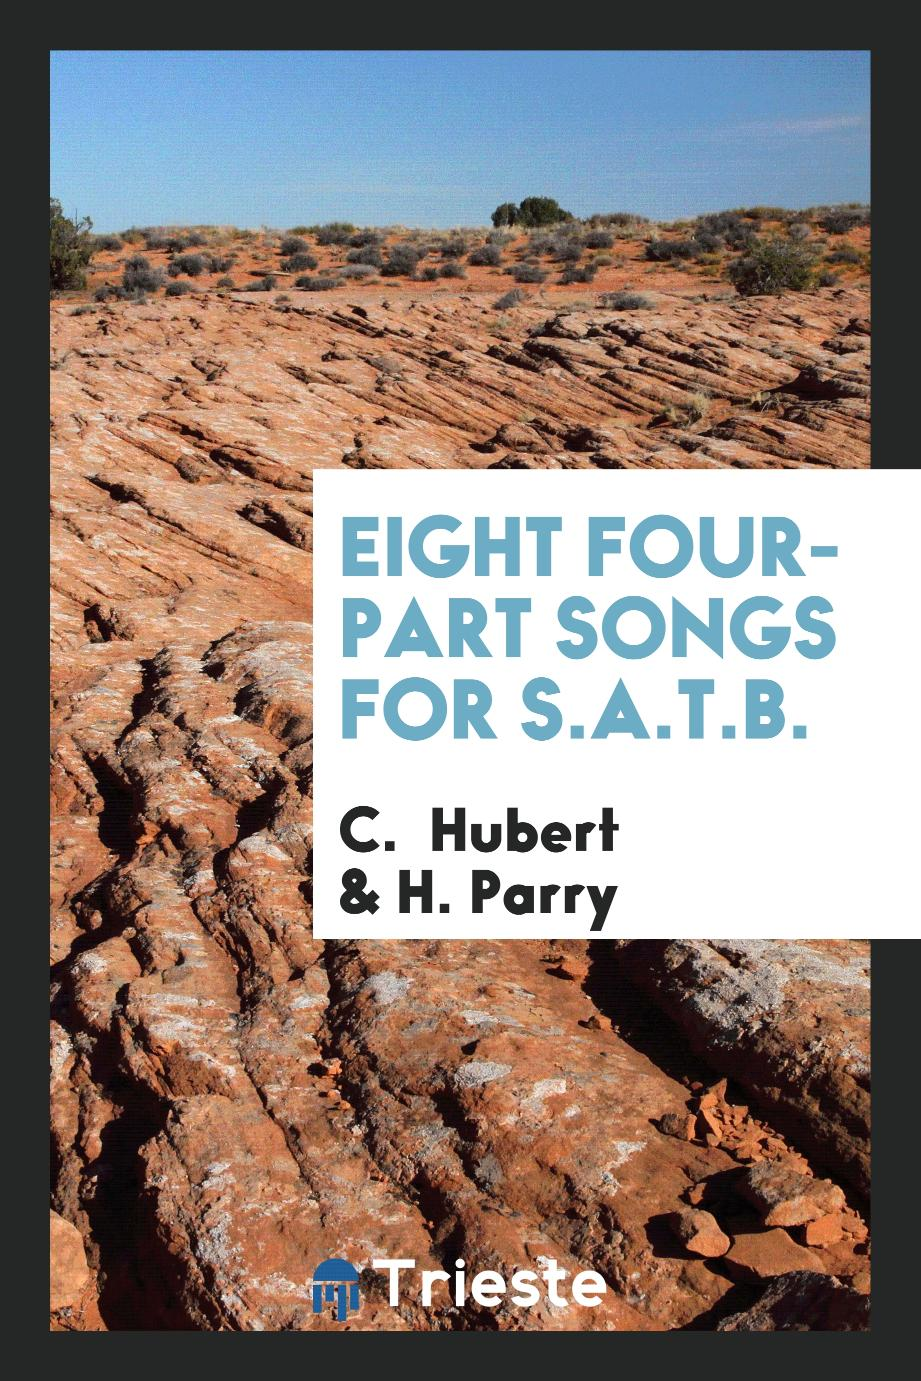 Eight Four-part Songs for S.A.T.B.